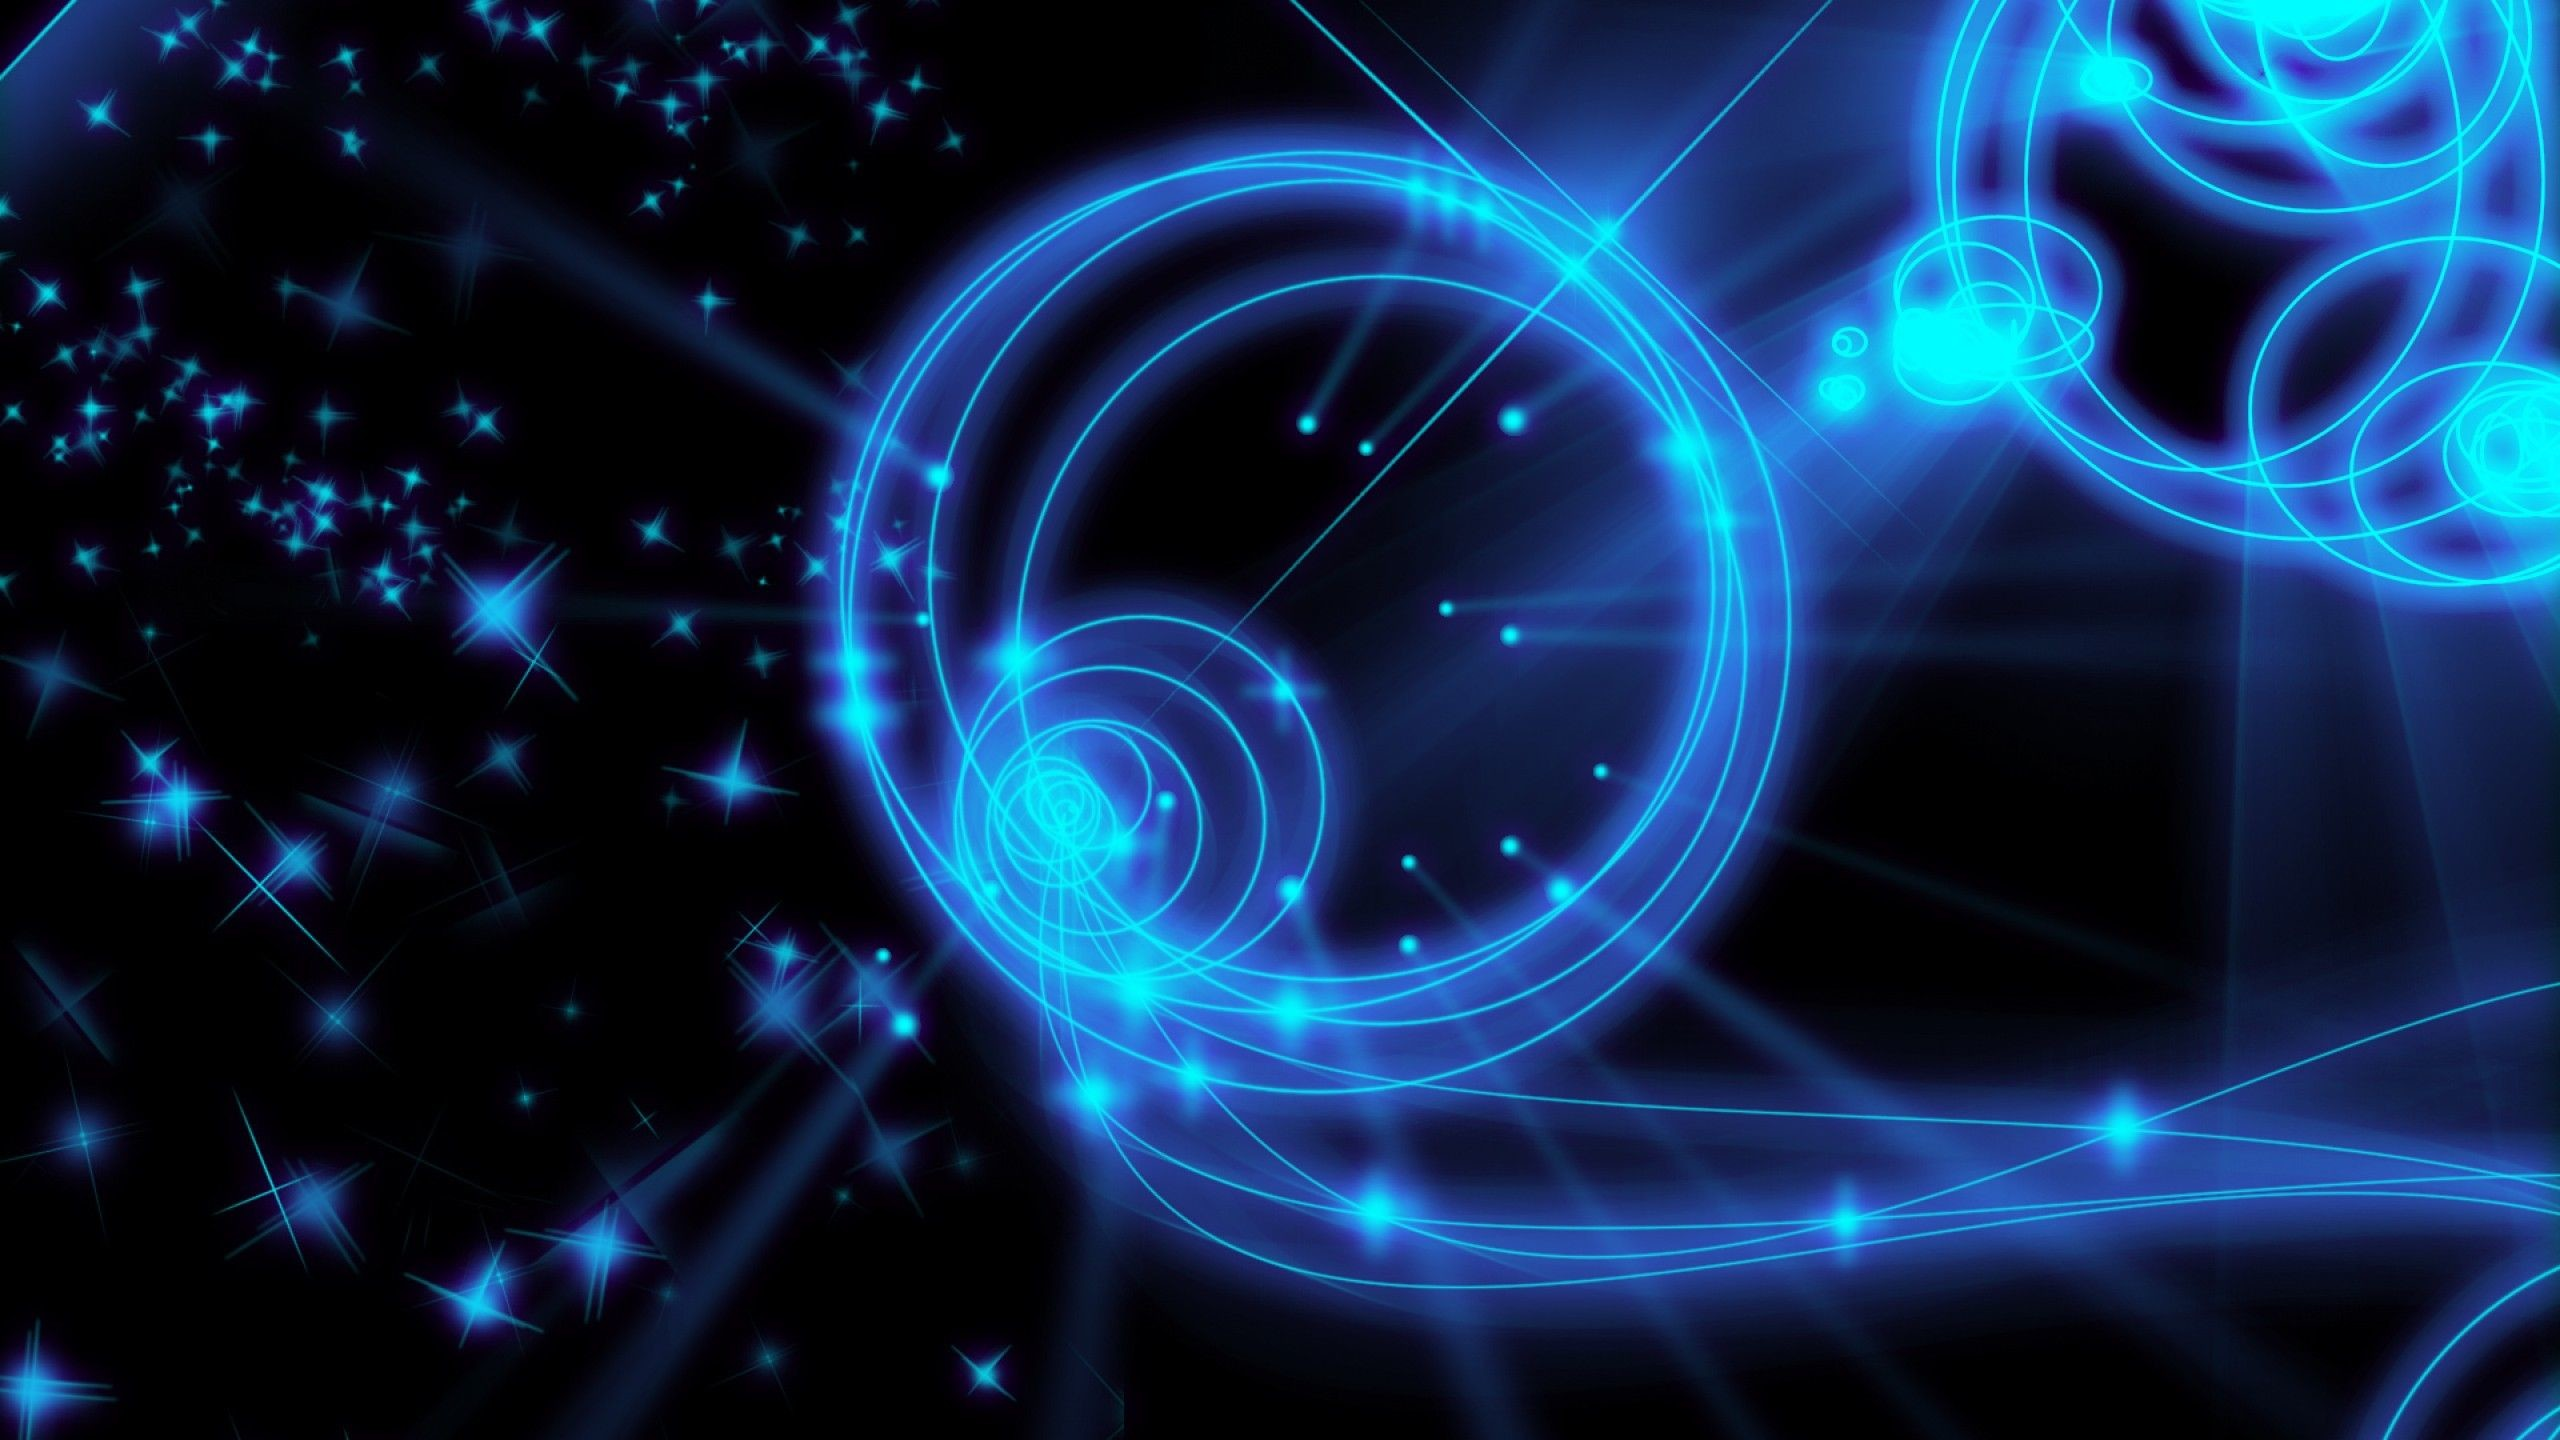 Res: 2560x1440, Blue Technology Wallpapers WallpaperPulse 1920×1080 Blue Tech Wallpapers  (46 Wallpapers)   Adorable Wallpapers